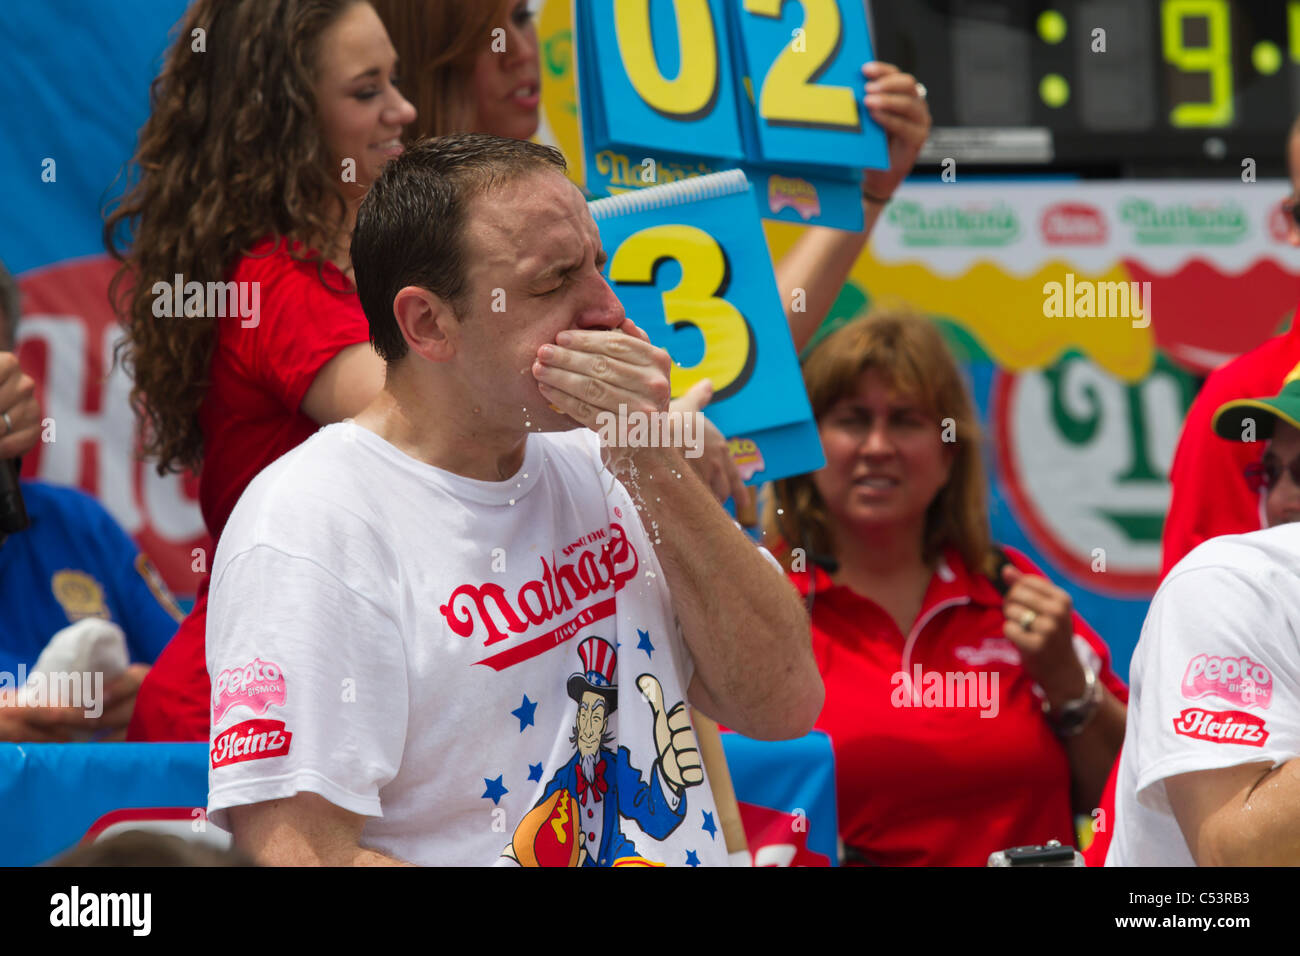 Joey Chestnut eating one of the 62 hot dogs that earned him the men's title at the 2011 Nathan's Famous - Stock Image